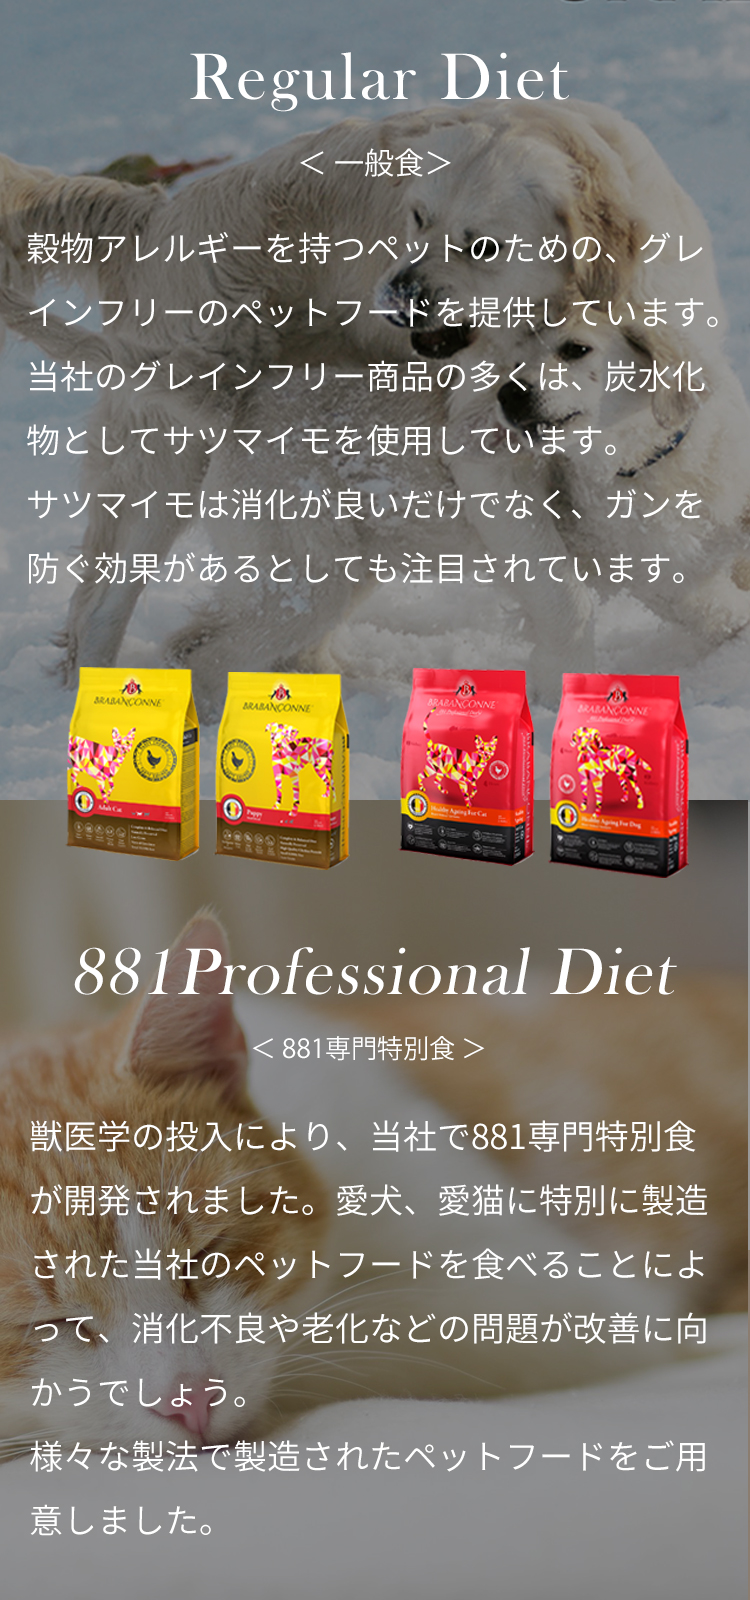 Regular Diet / 881Professional Diet